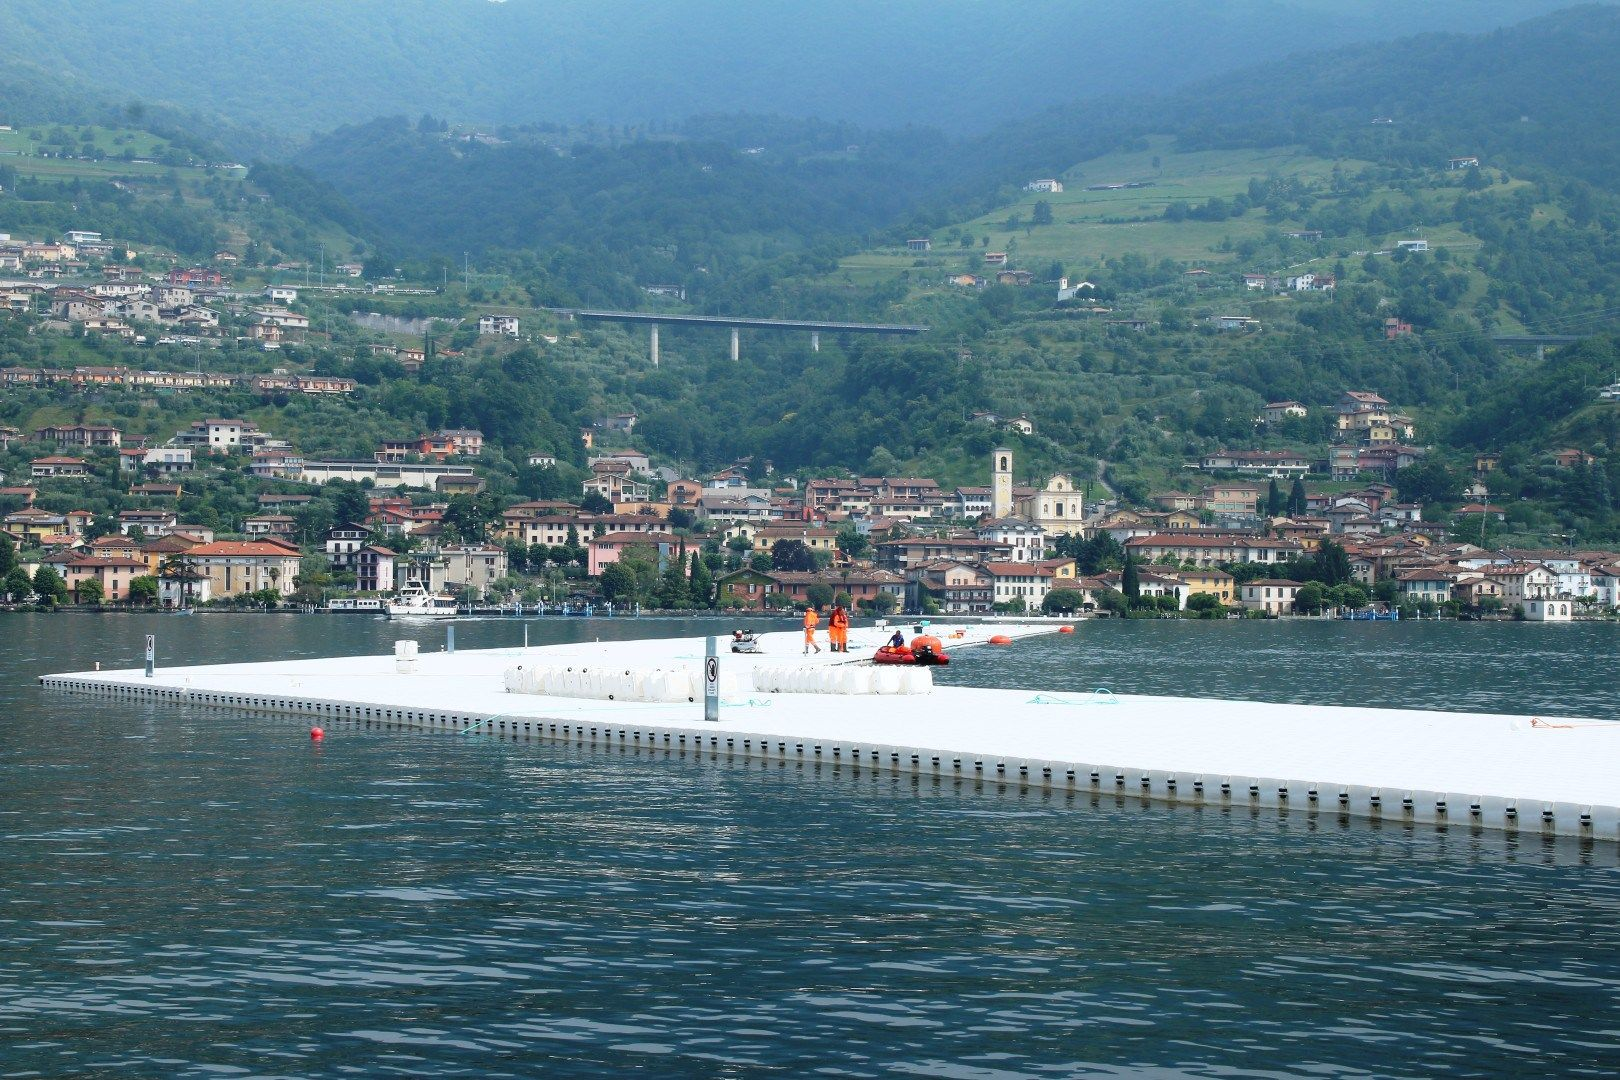 The floating piers designed by Christo and Jeanne-Claude, a system of 220,000 high-density poly-ethylene cubes, covering 100,000 square meter, in an area 100 kilometers east of Milan lake Iseo.